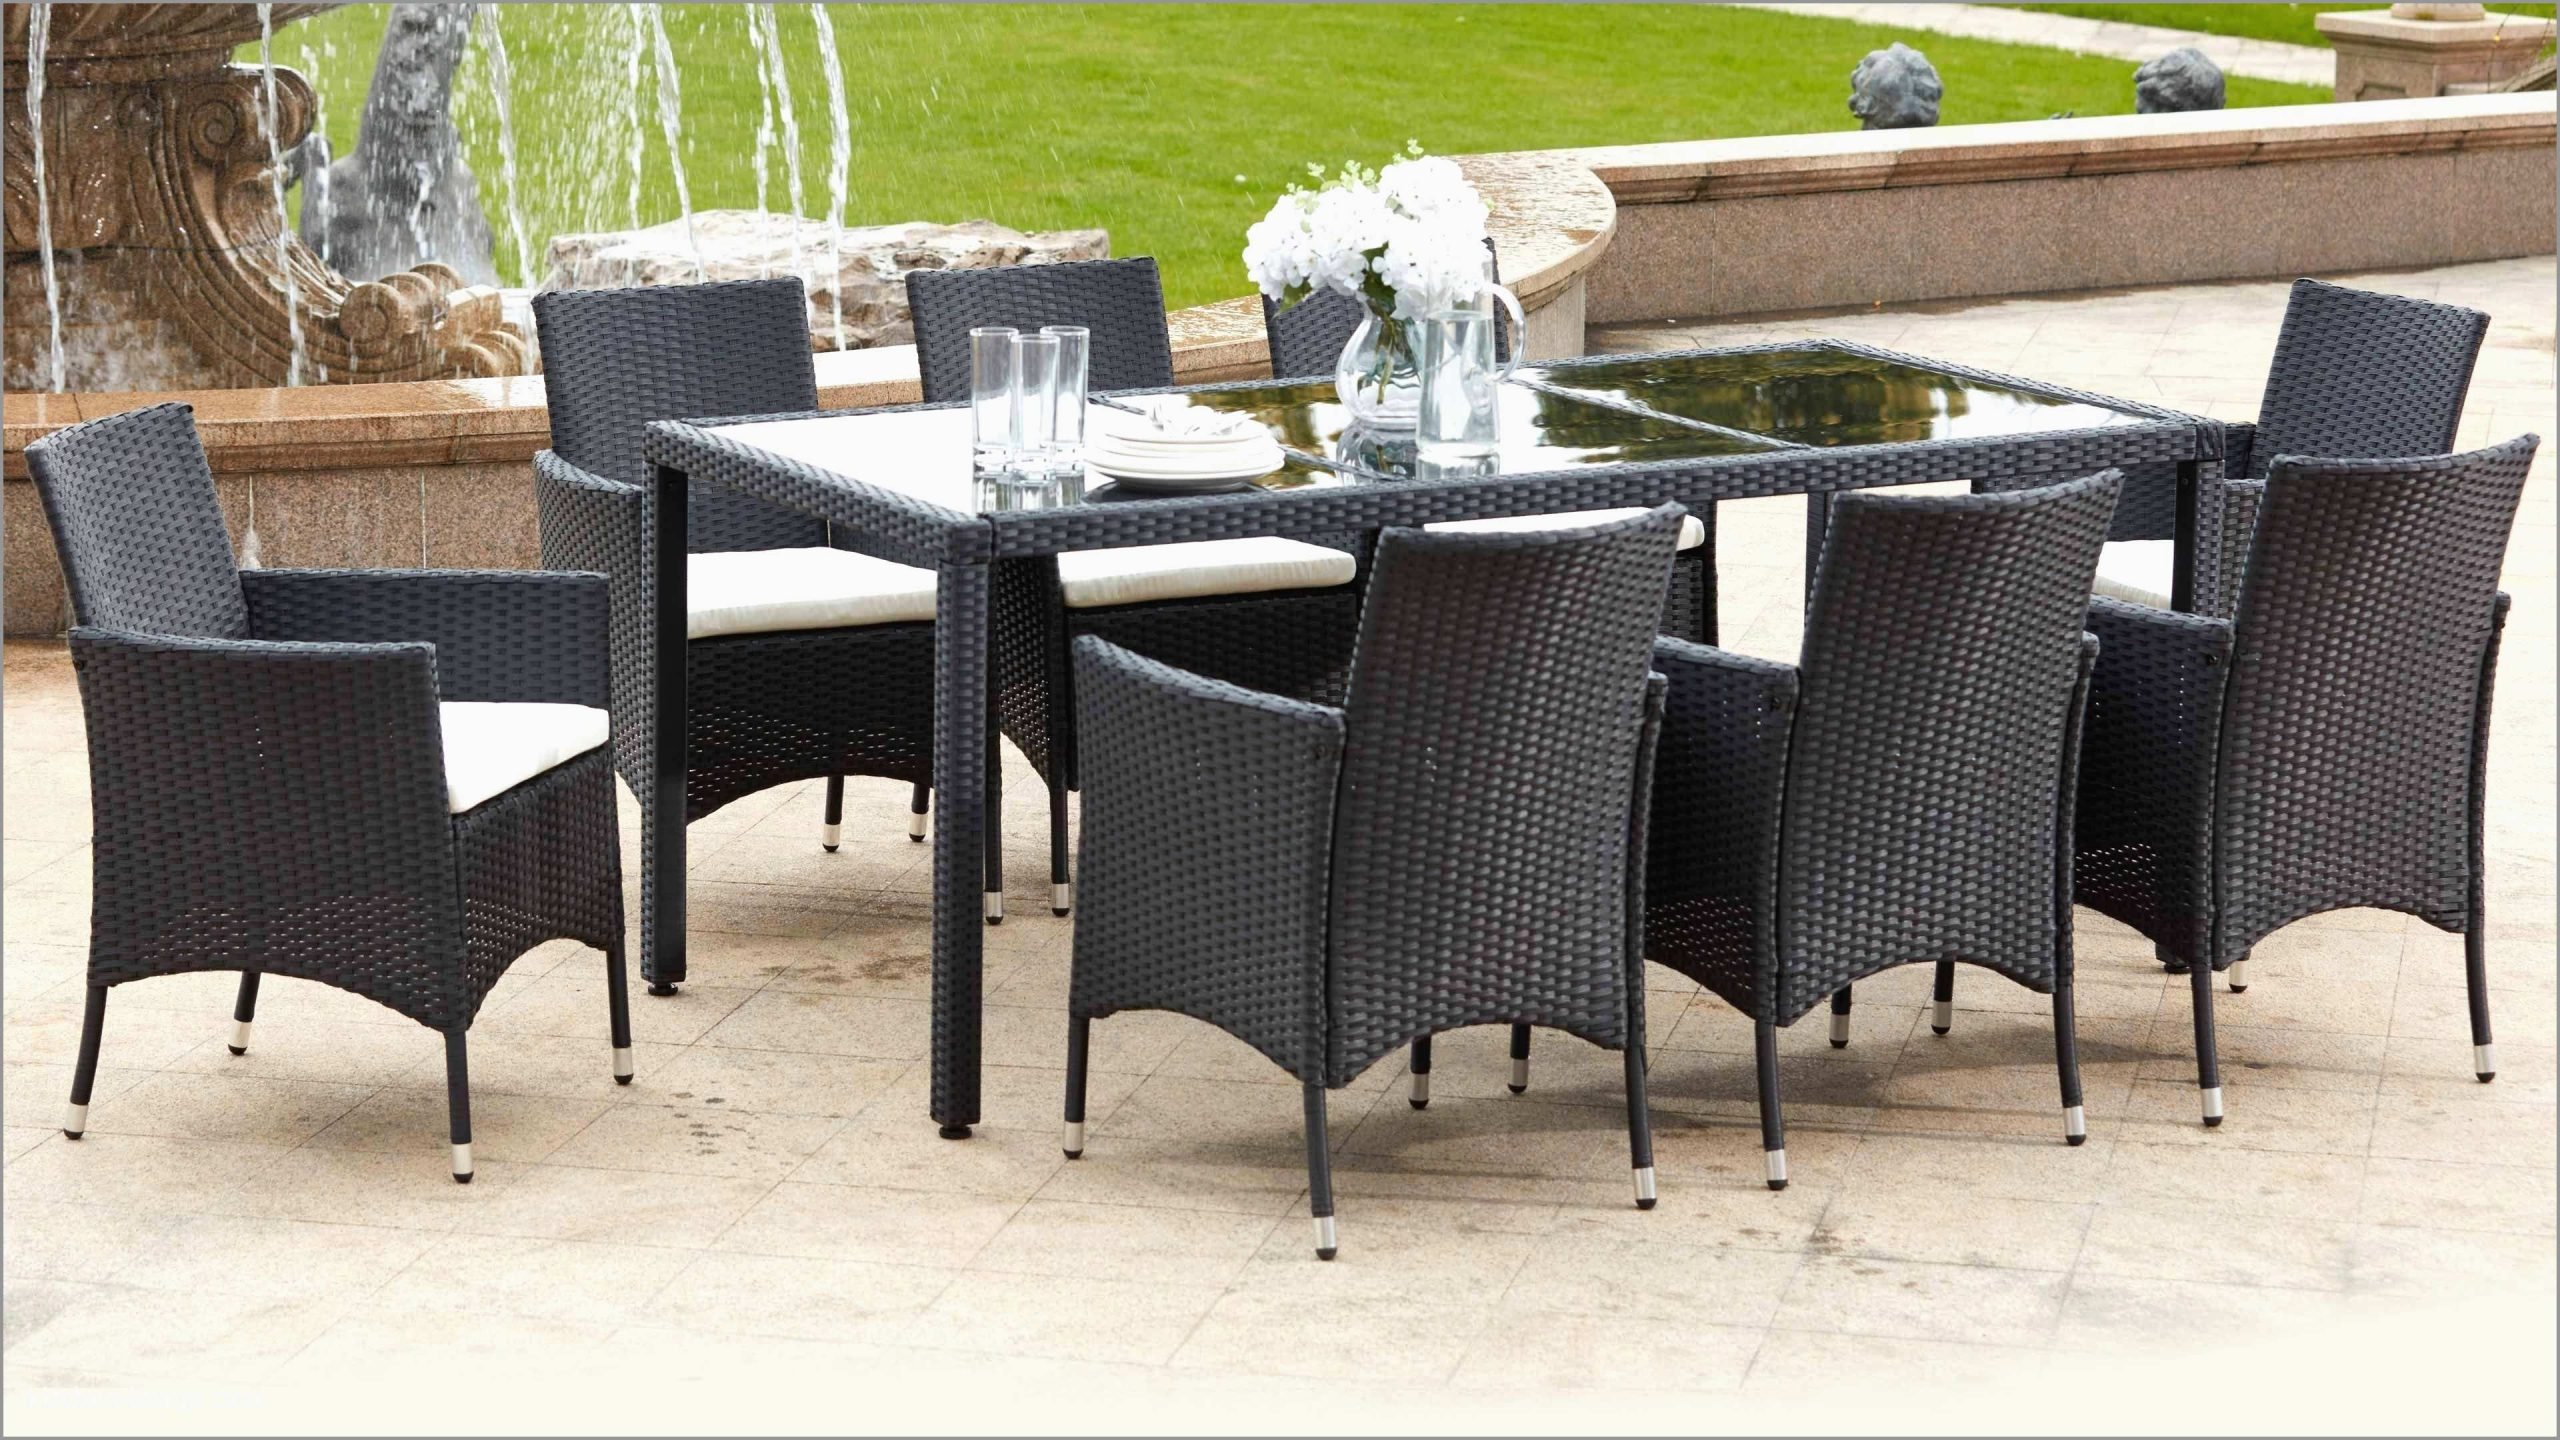 Salon De Jardin Occasion Le Bon Coin - The Best Undercut ... intérieur Table De Jardin En Fer Forgé Occasion Le Bon Coin